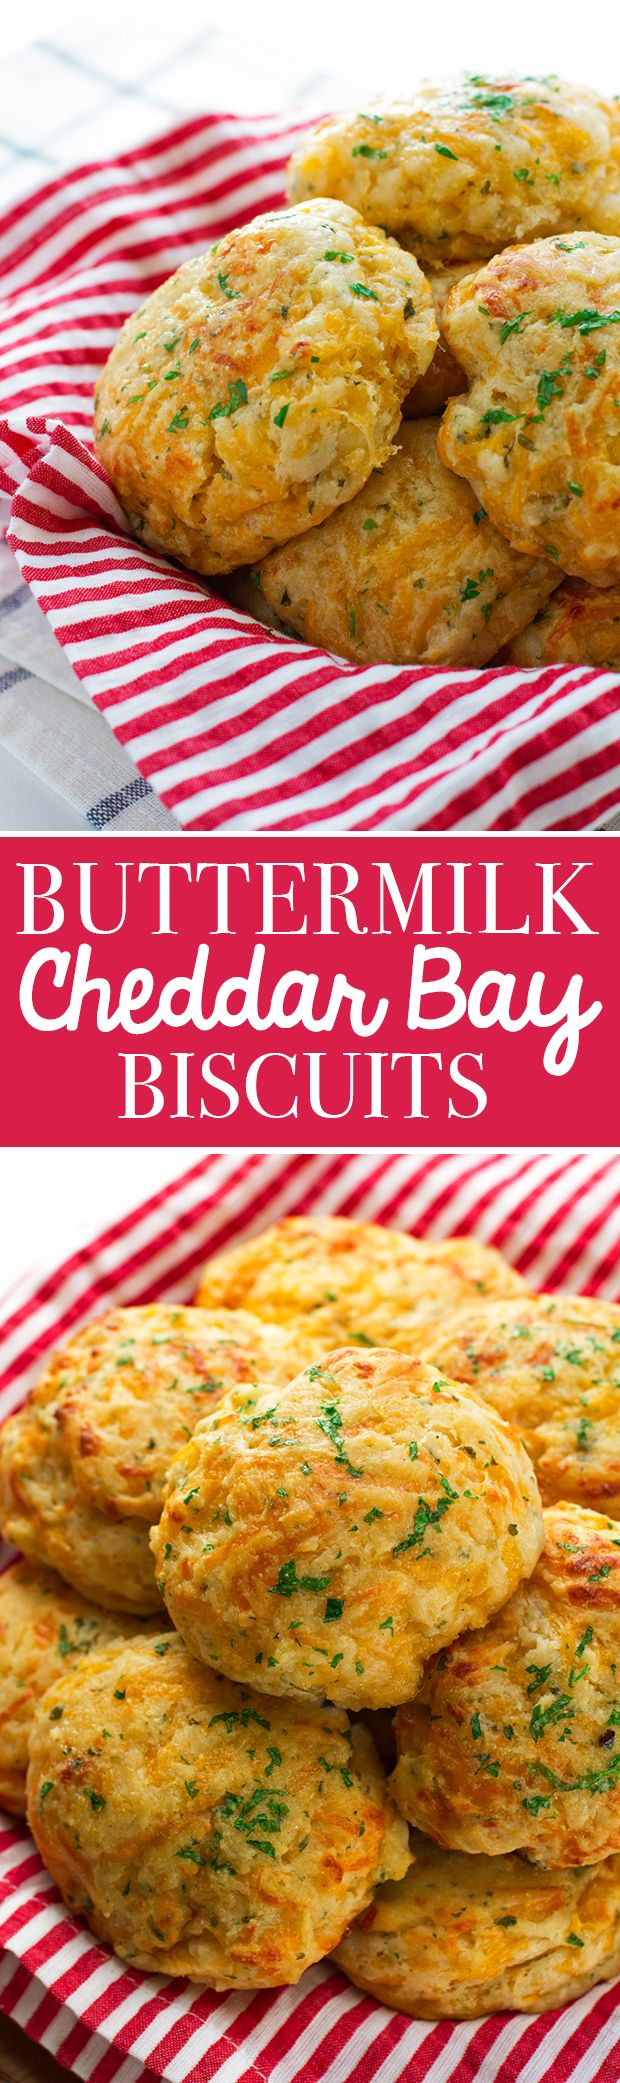 Buttermilk Cheddar Bay Biscuits - the most delicious Red Lobster style biscuits! #cheddarbaybiscuits #biscuits #redlobsterbiscuits | Littlespicejar.com